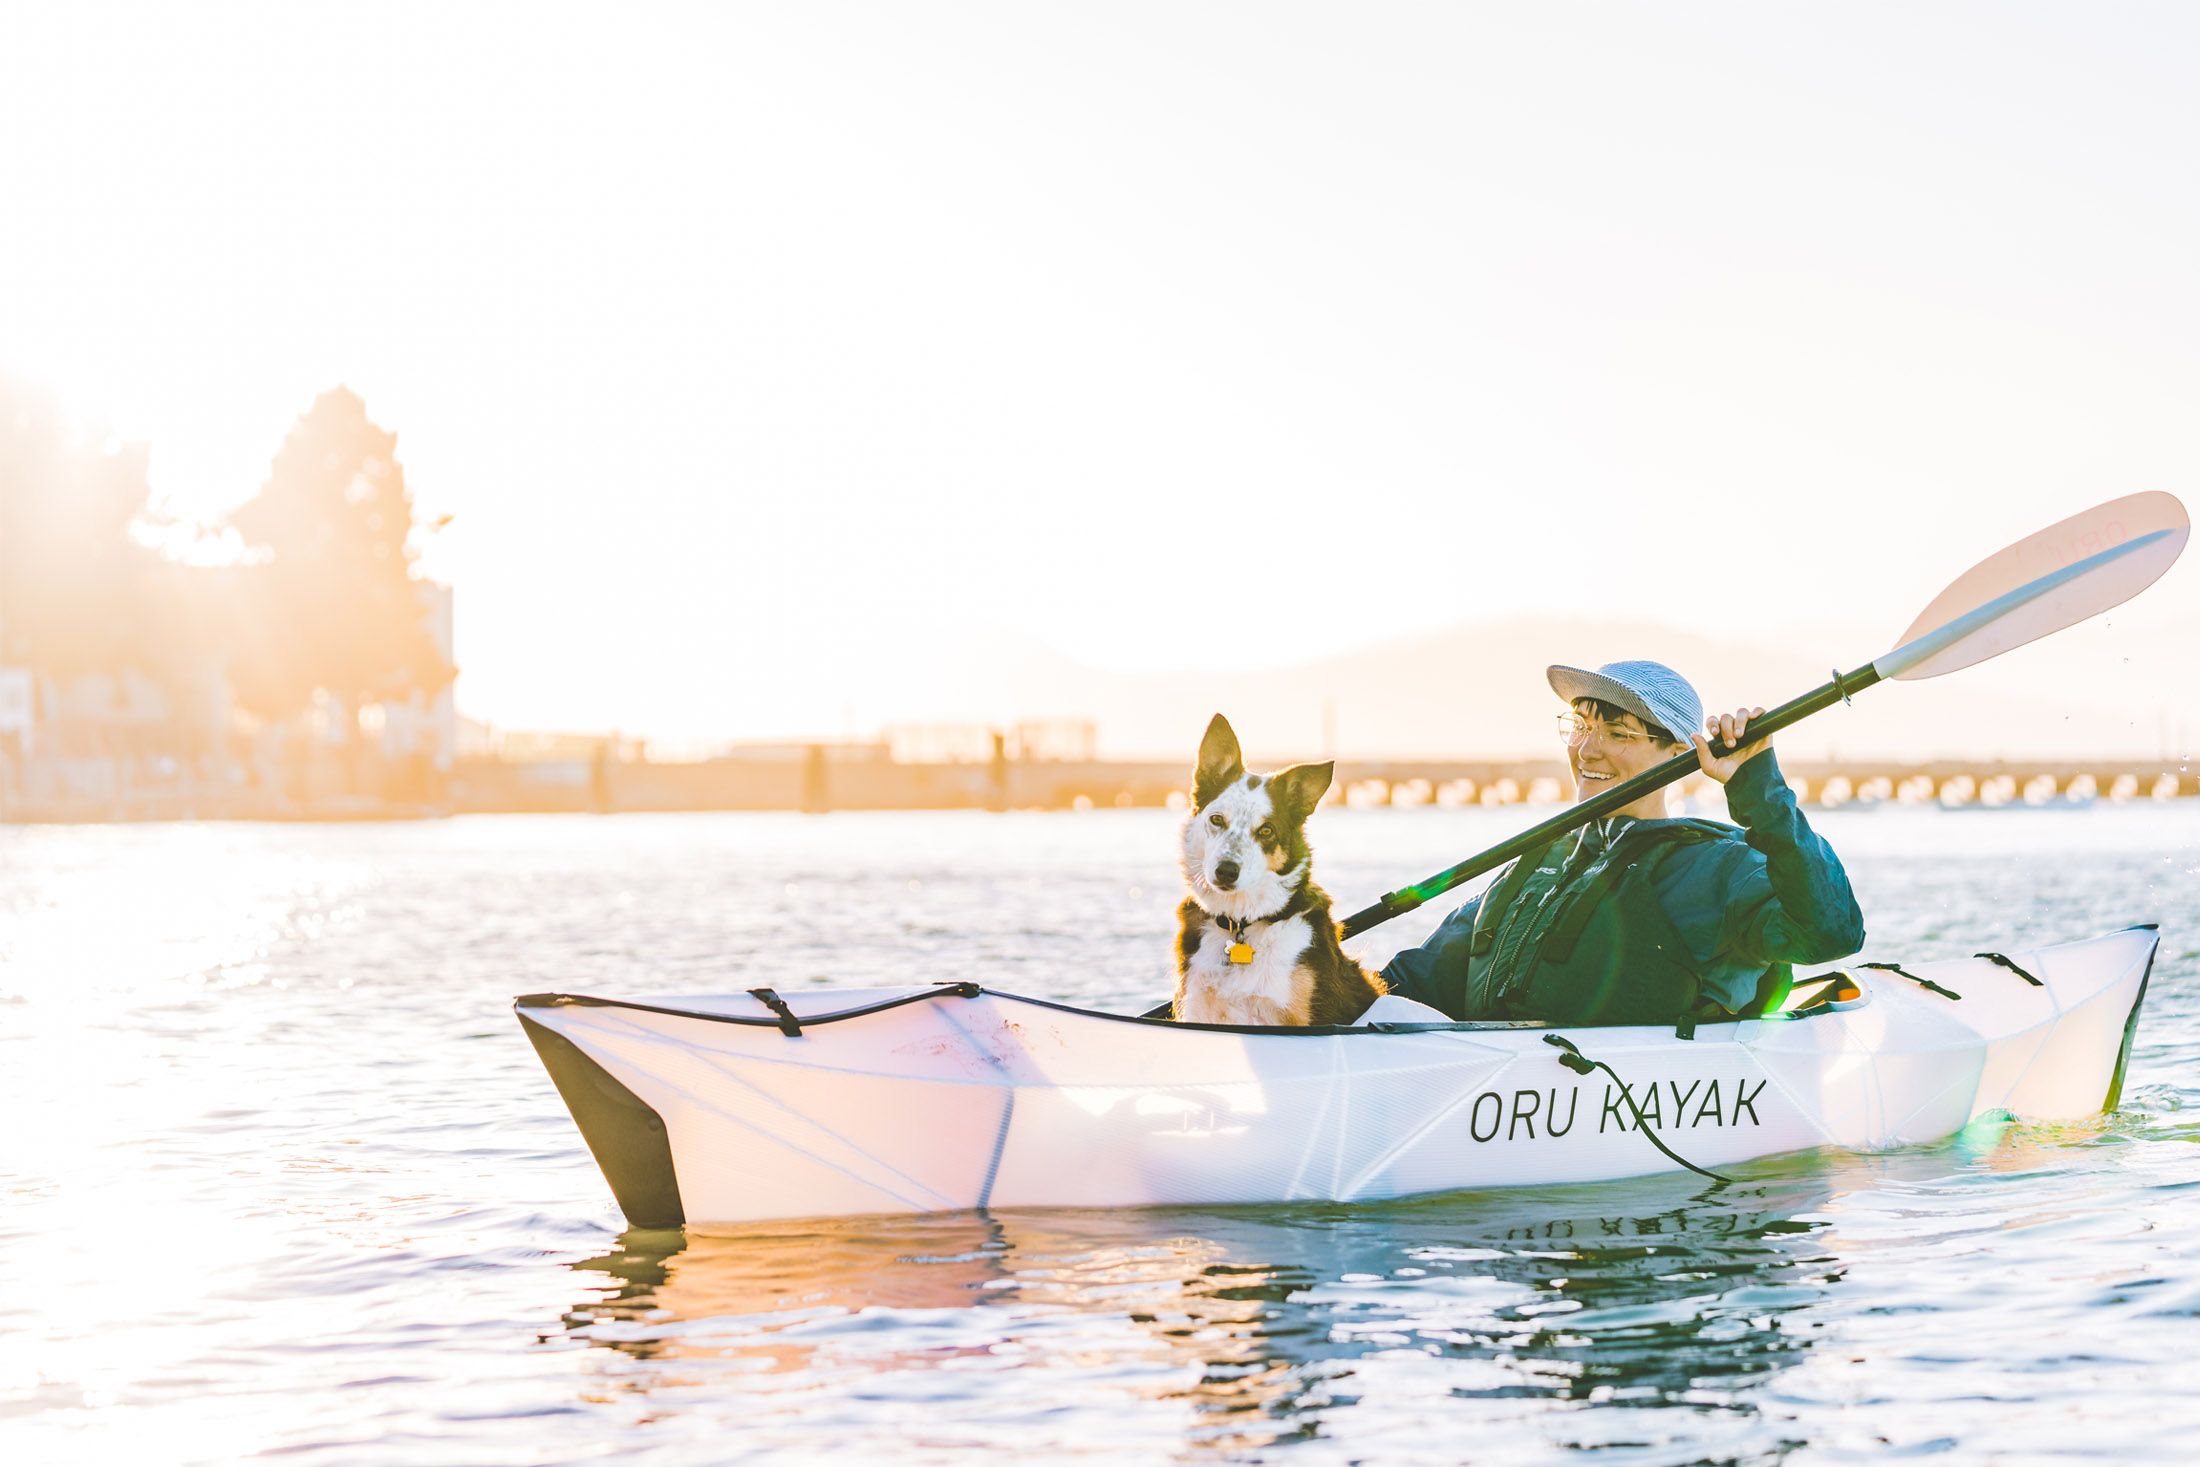 Person Paddling in Oru Kayak with dog